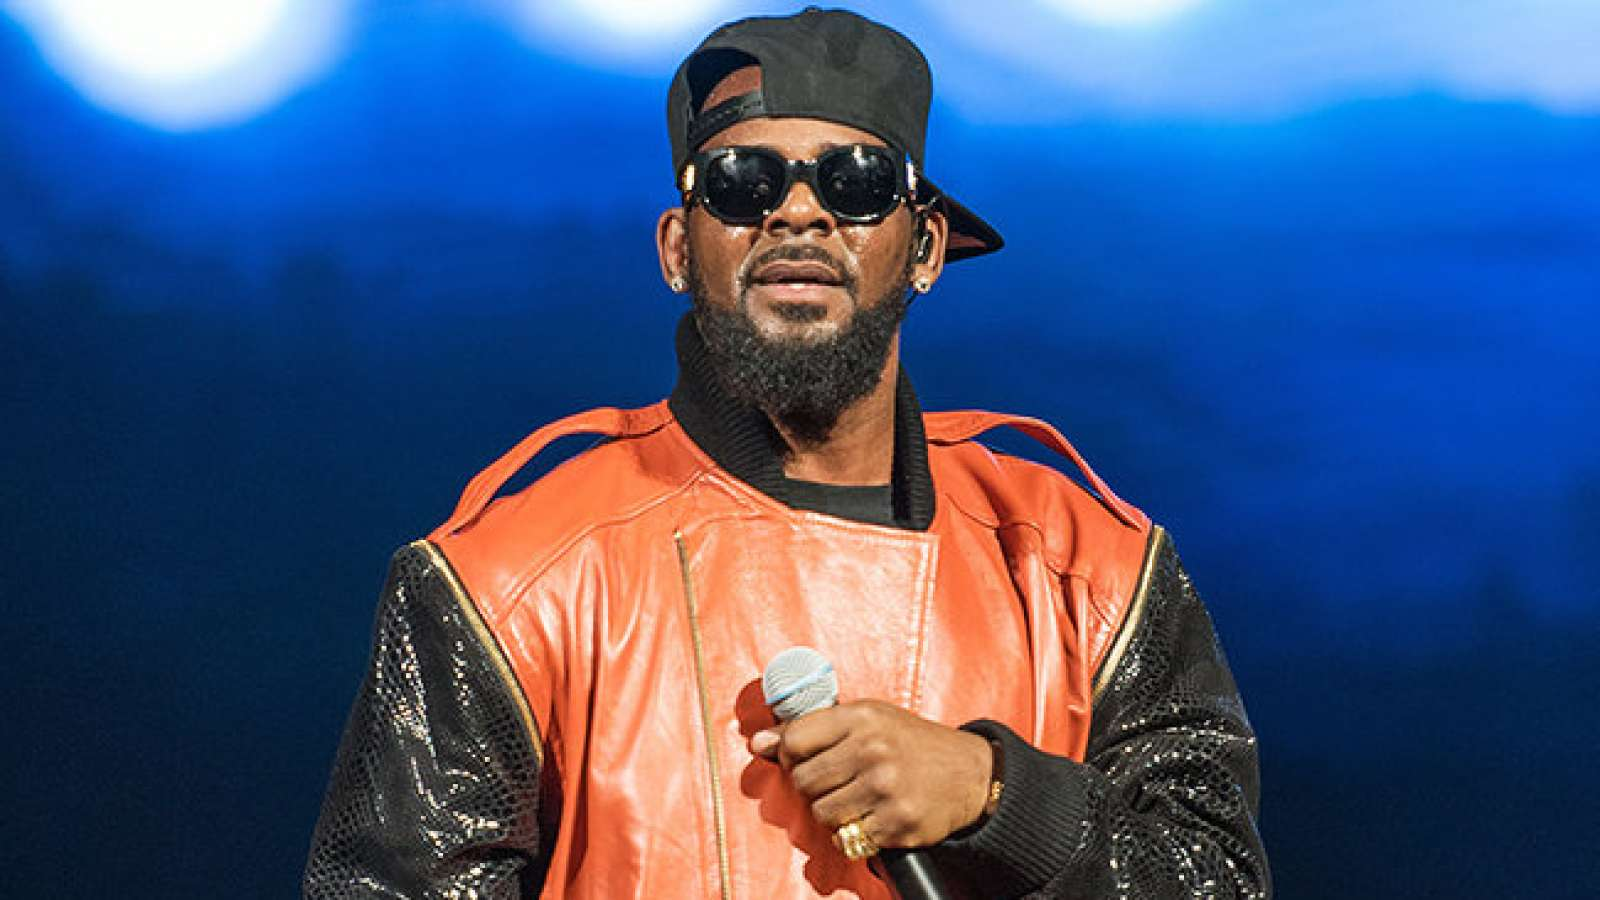 R. Kelly Admitted He Did It in New Song...Now What?